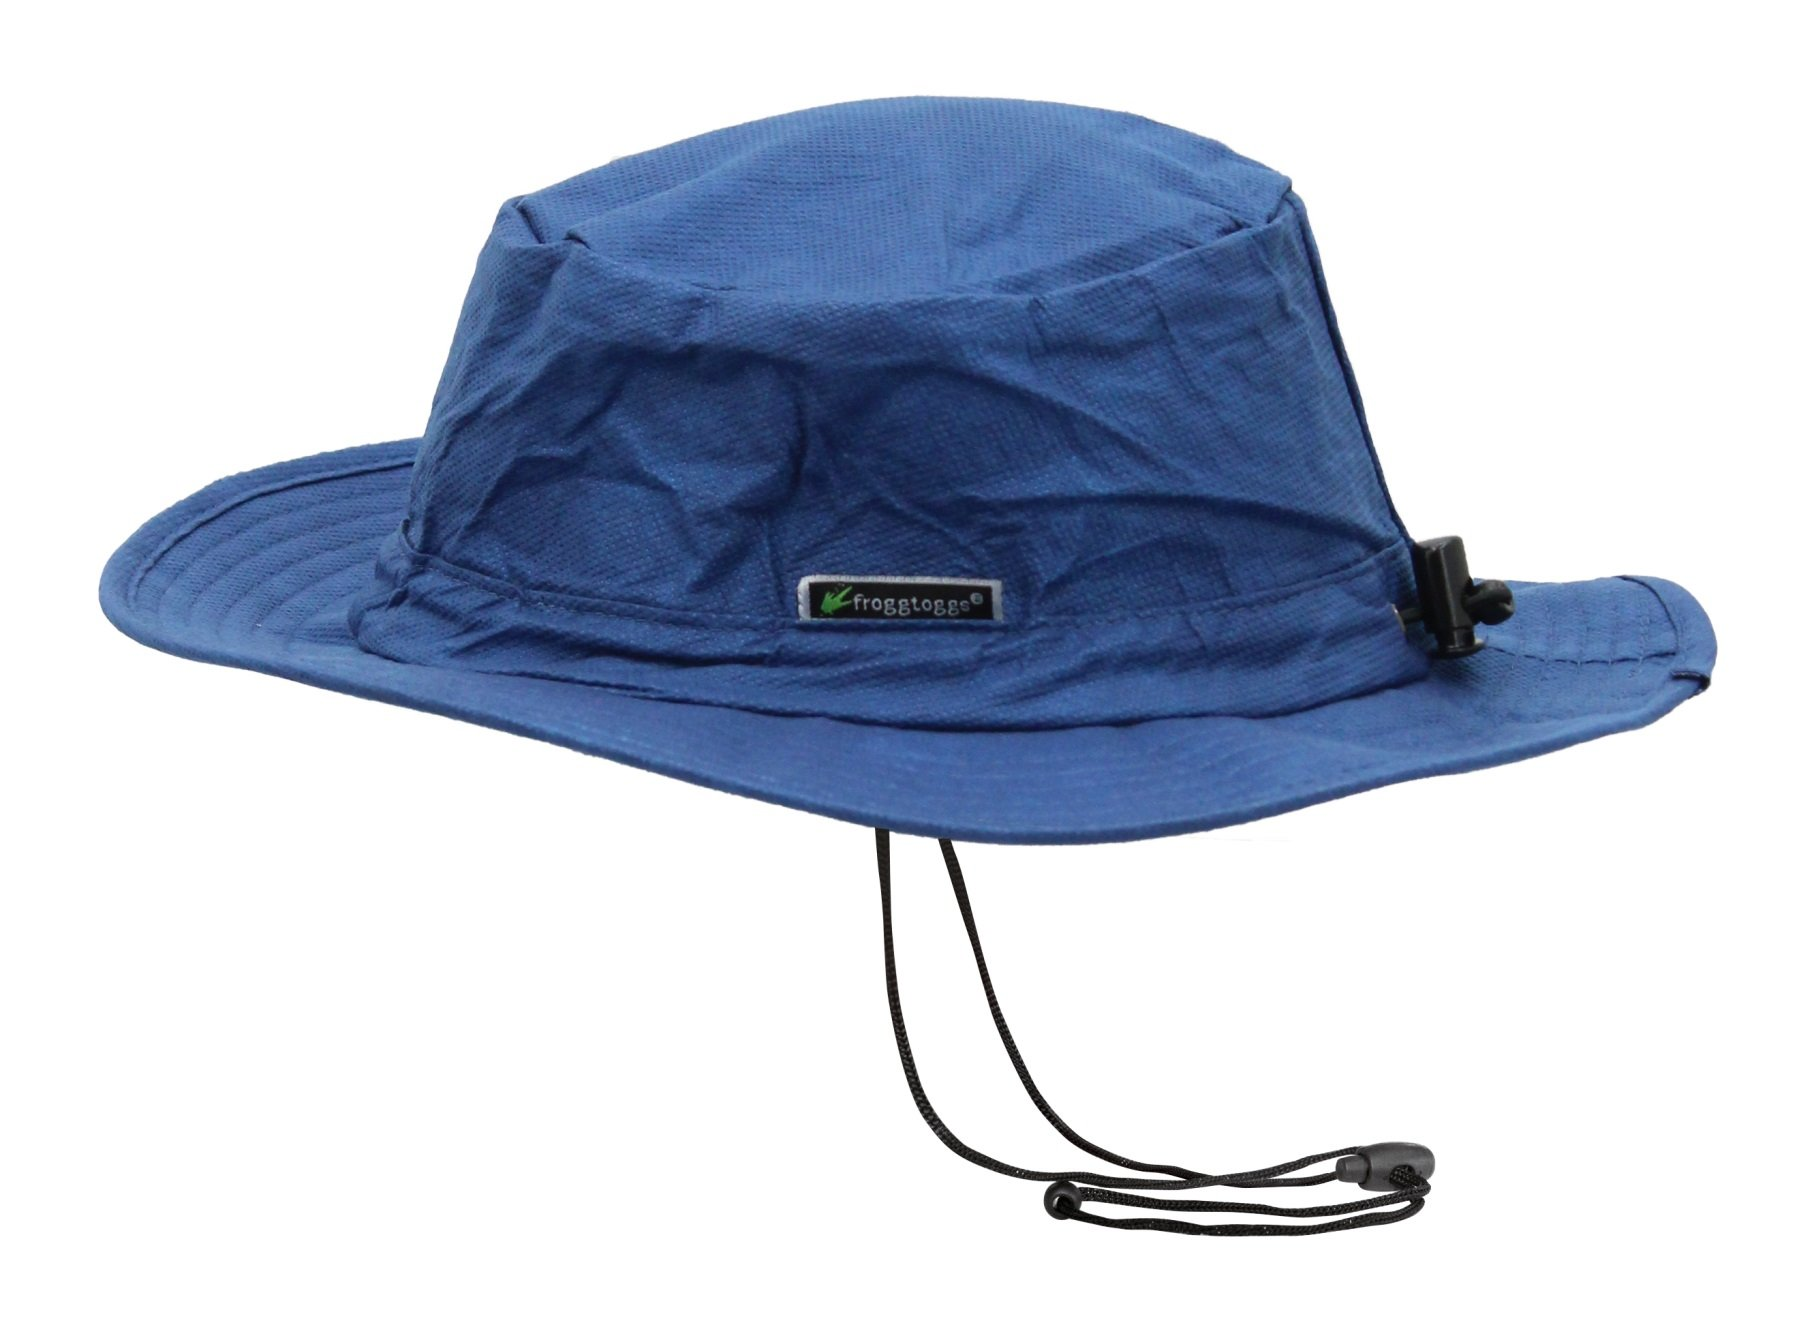 59f23889641 Frogg Toggs FTH101-12 Waterproof Bucket Hat Royal Blue – Shop Robby s